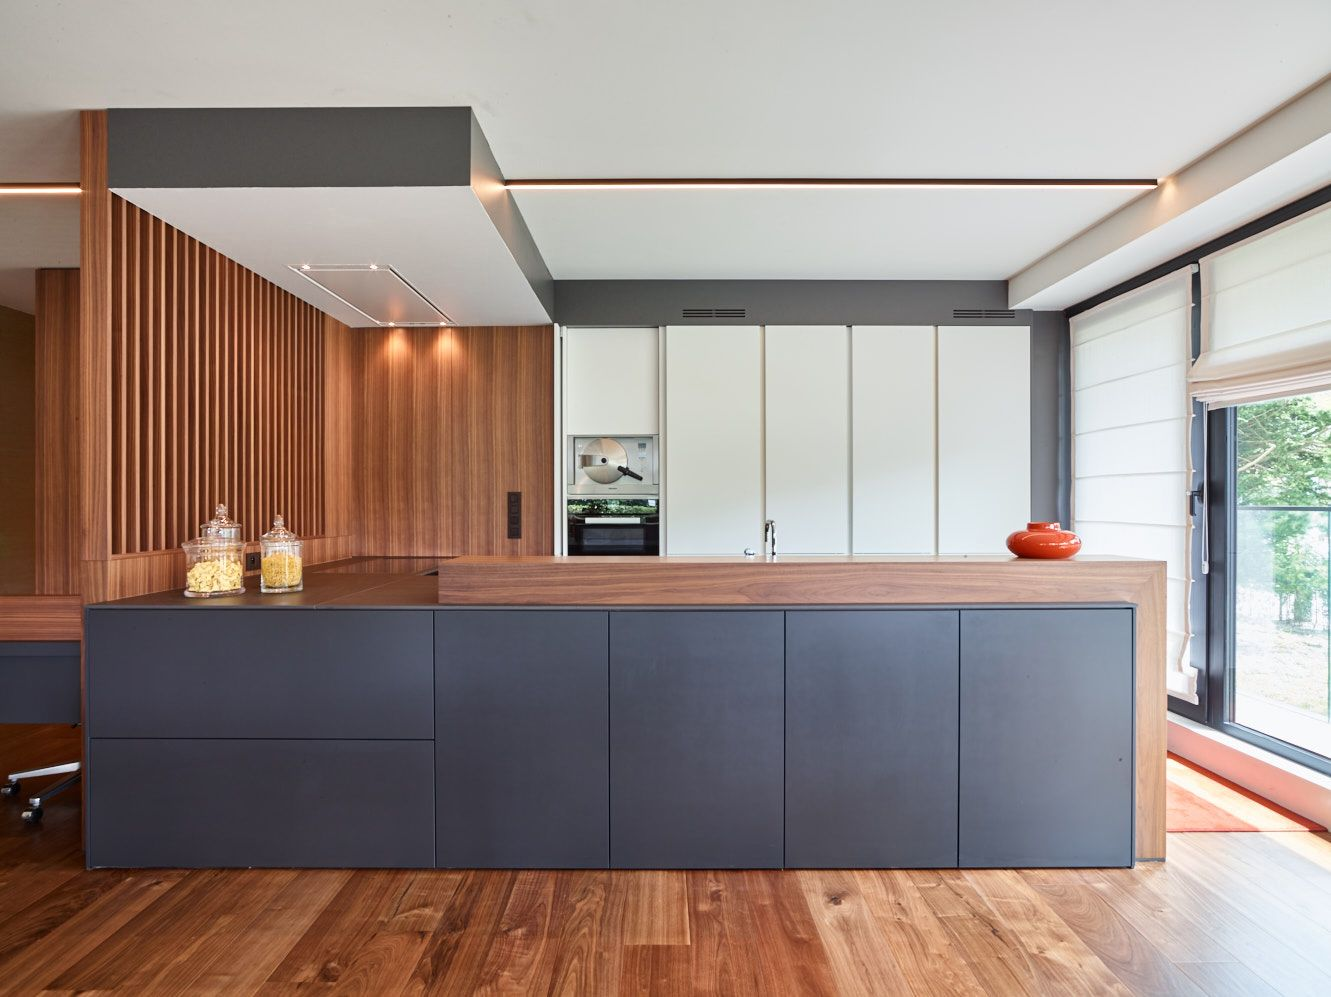 This Siematic Kitchen Extends Into An Office Area With A